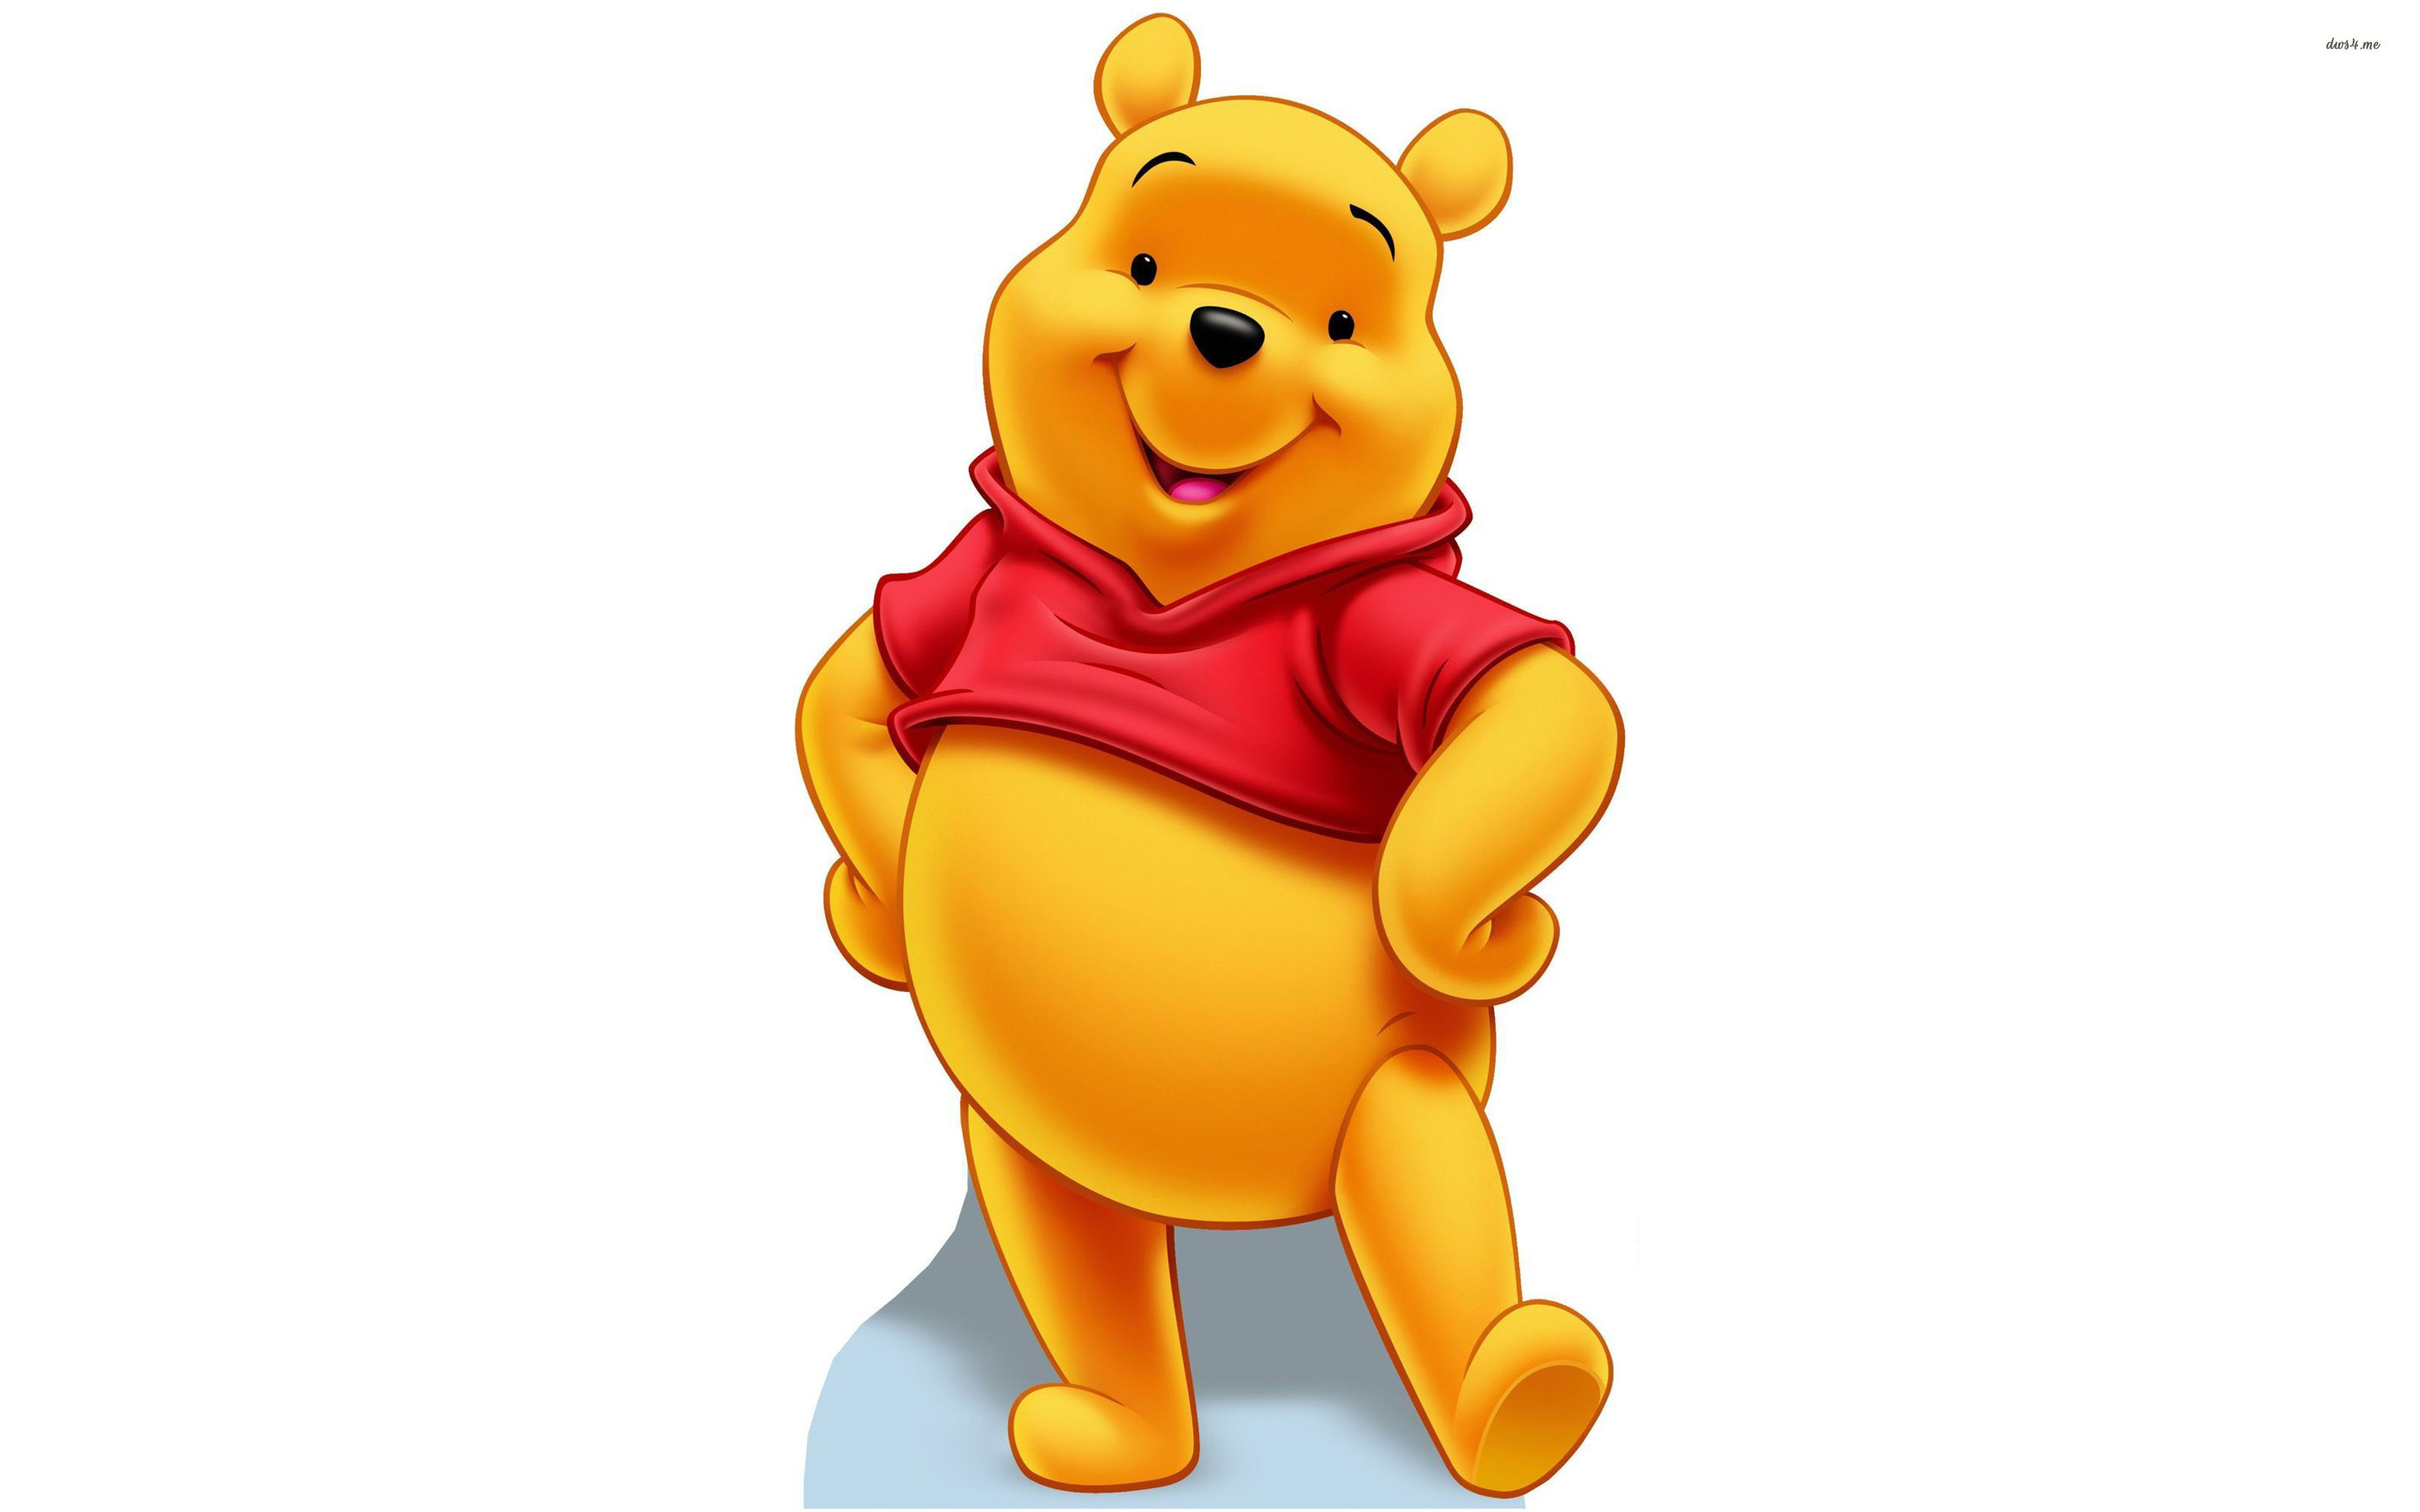 This is an image of Delicate Pooh Bear Images